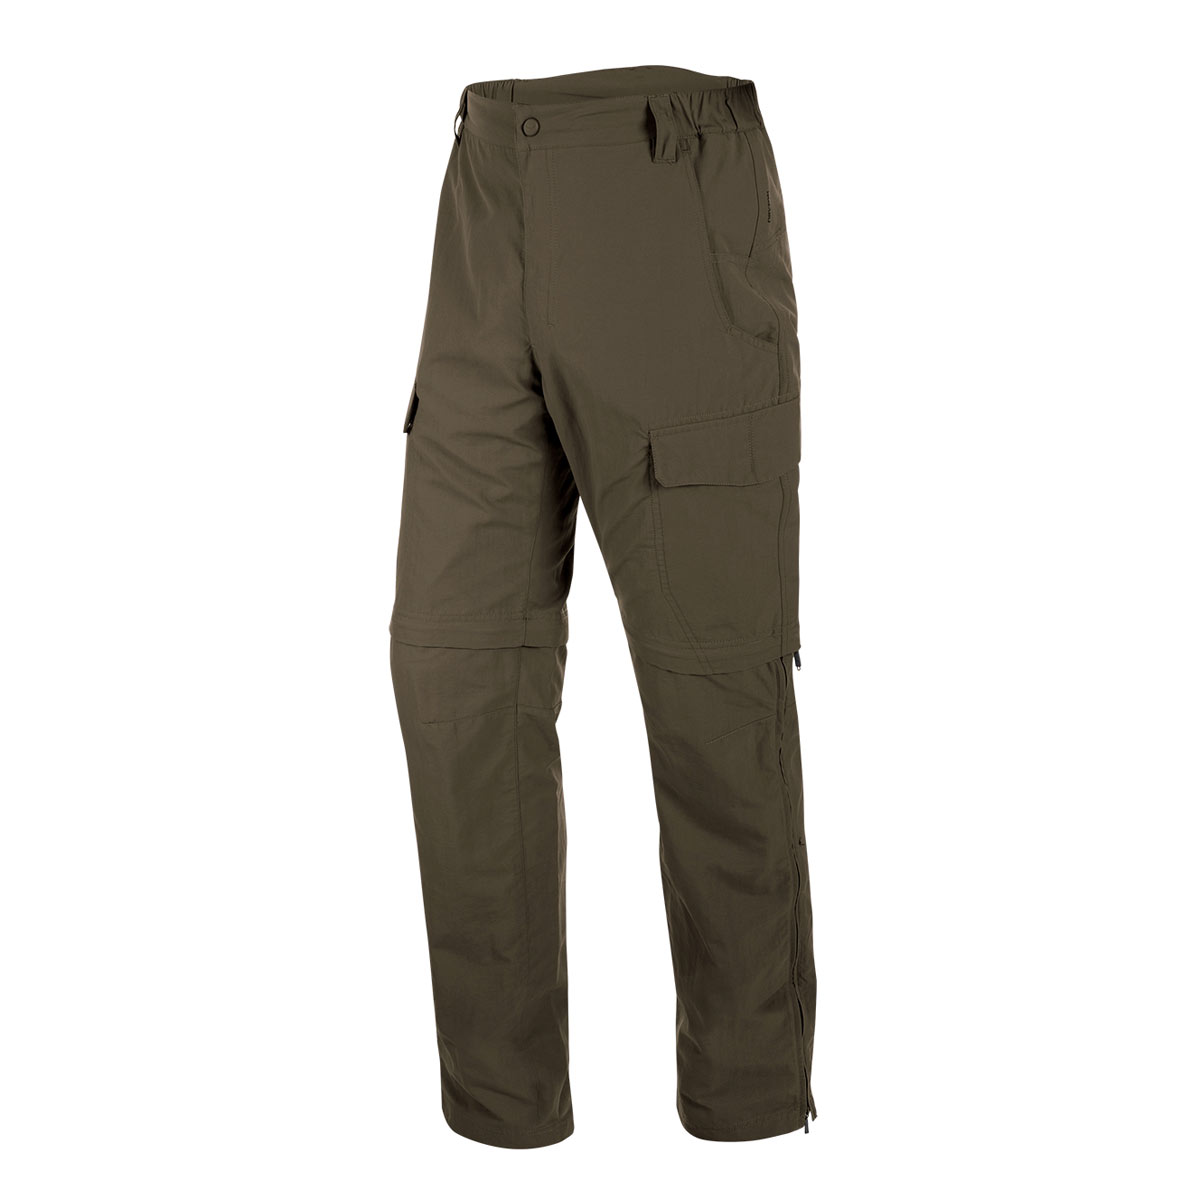 salewa cernera dry 2 1 herren trekkinghose wanderhose outdoor zip off hose 26141 ebay. Black Bedroom Furniture Sets. Home Design Ideas